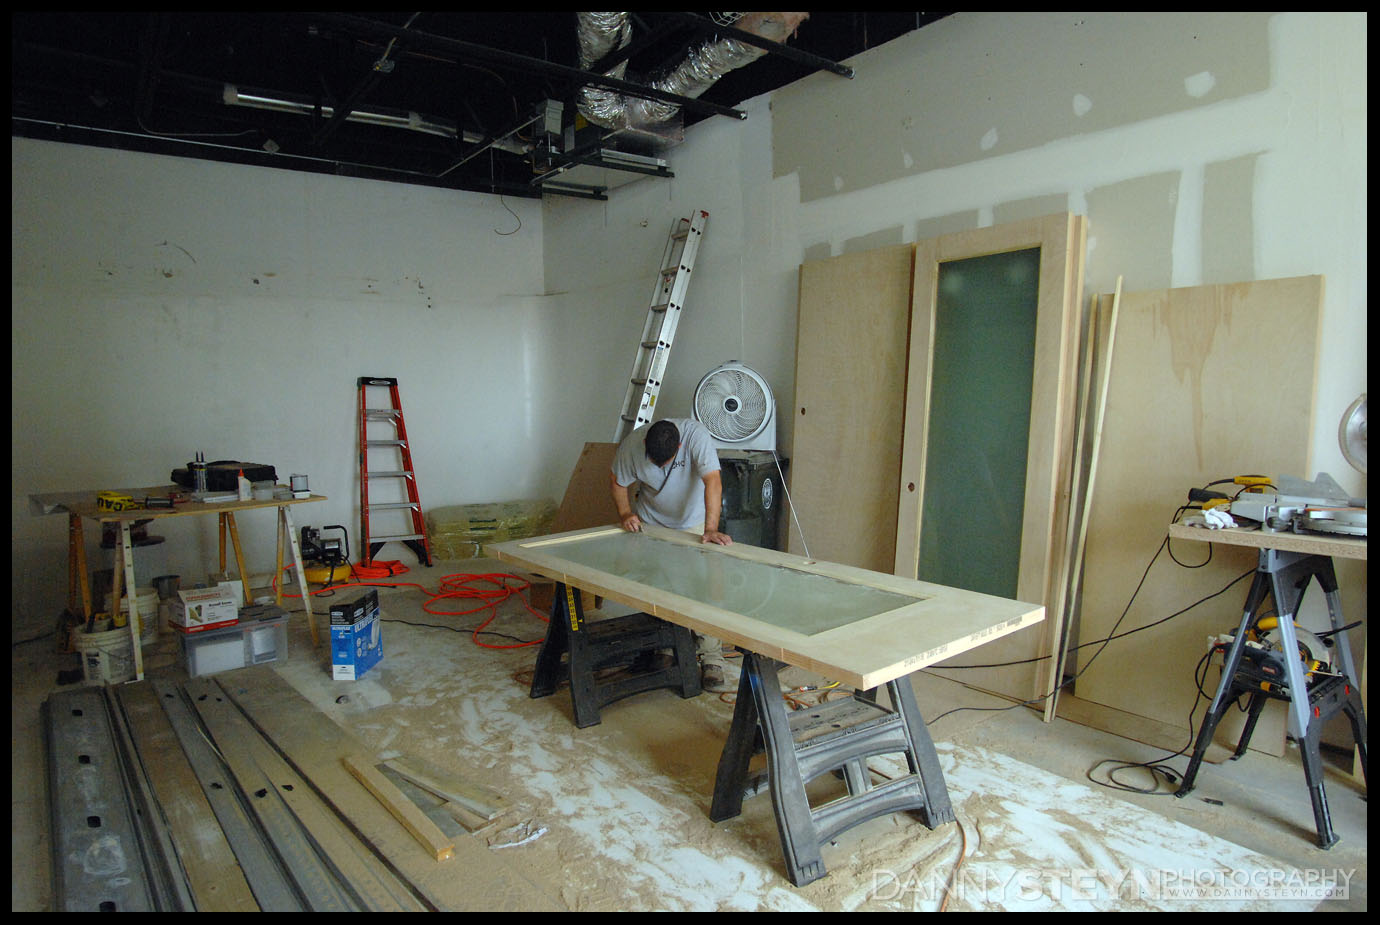 New Photography Studio construction - 8ft tall doors being custom made on site